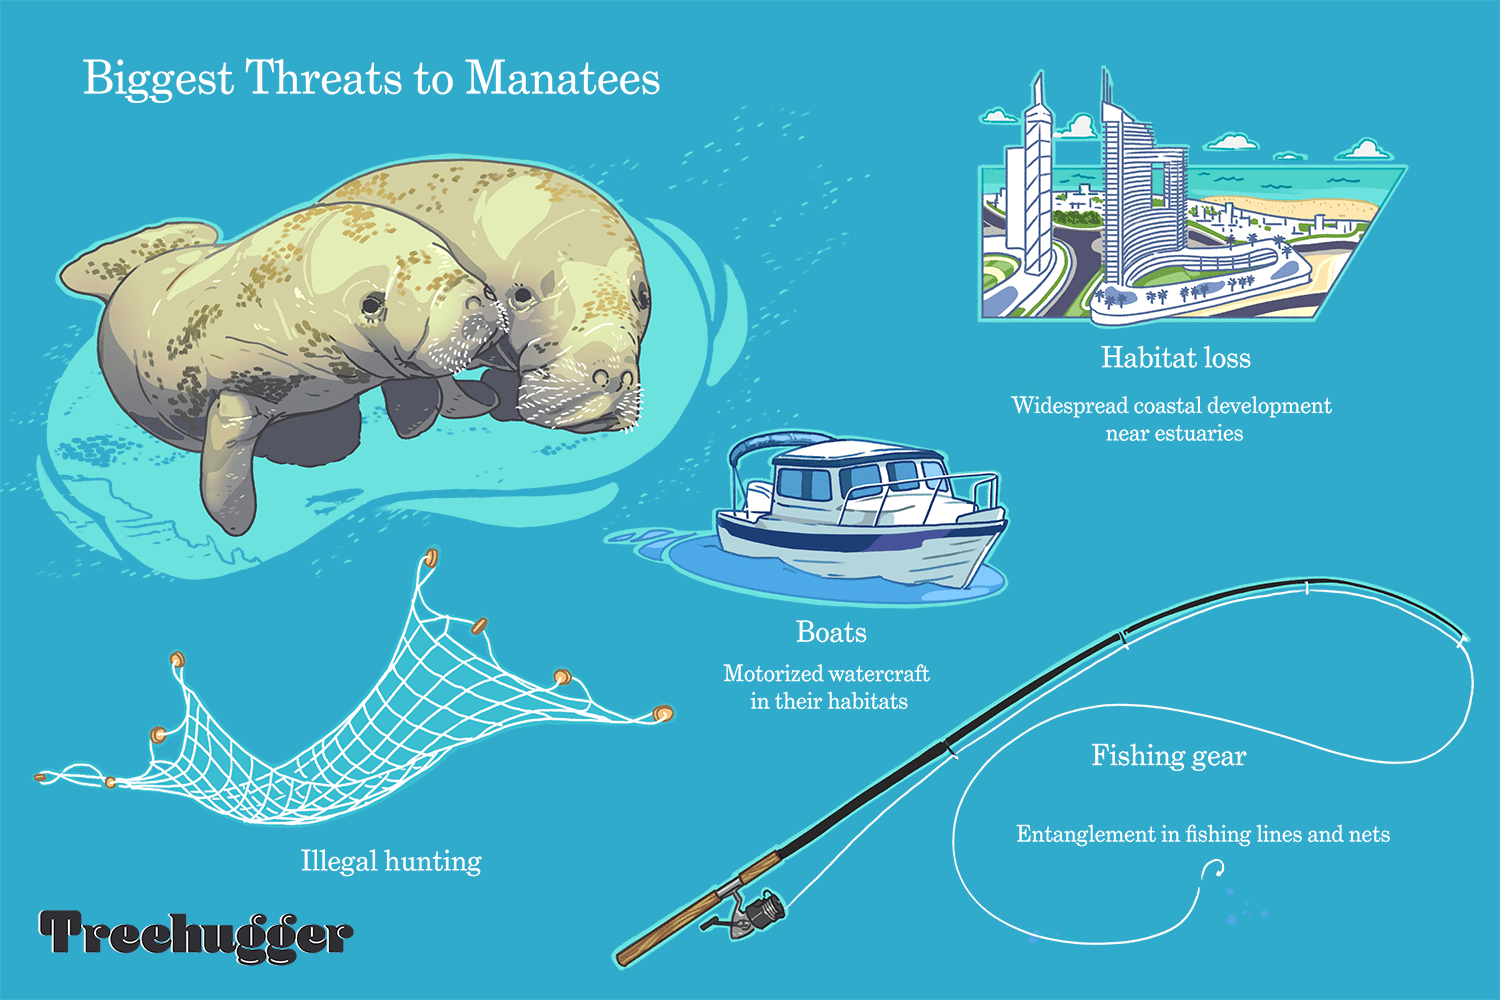 Biggest threats to manatees include boats and illegal hunting illustration